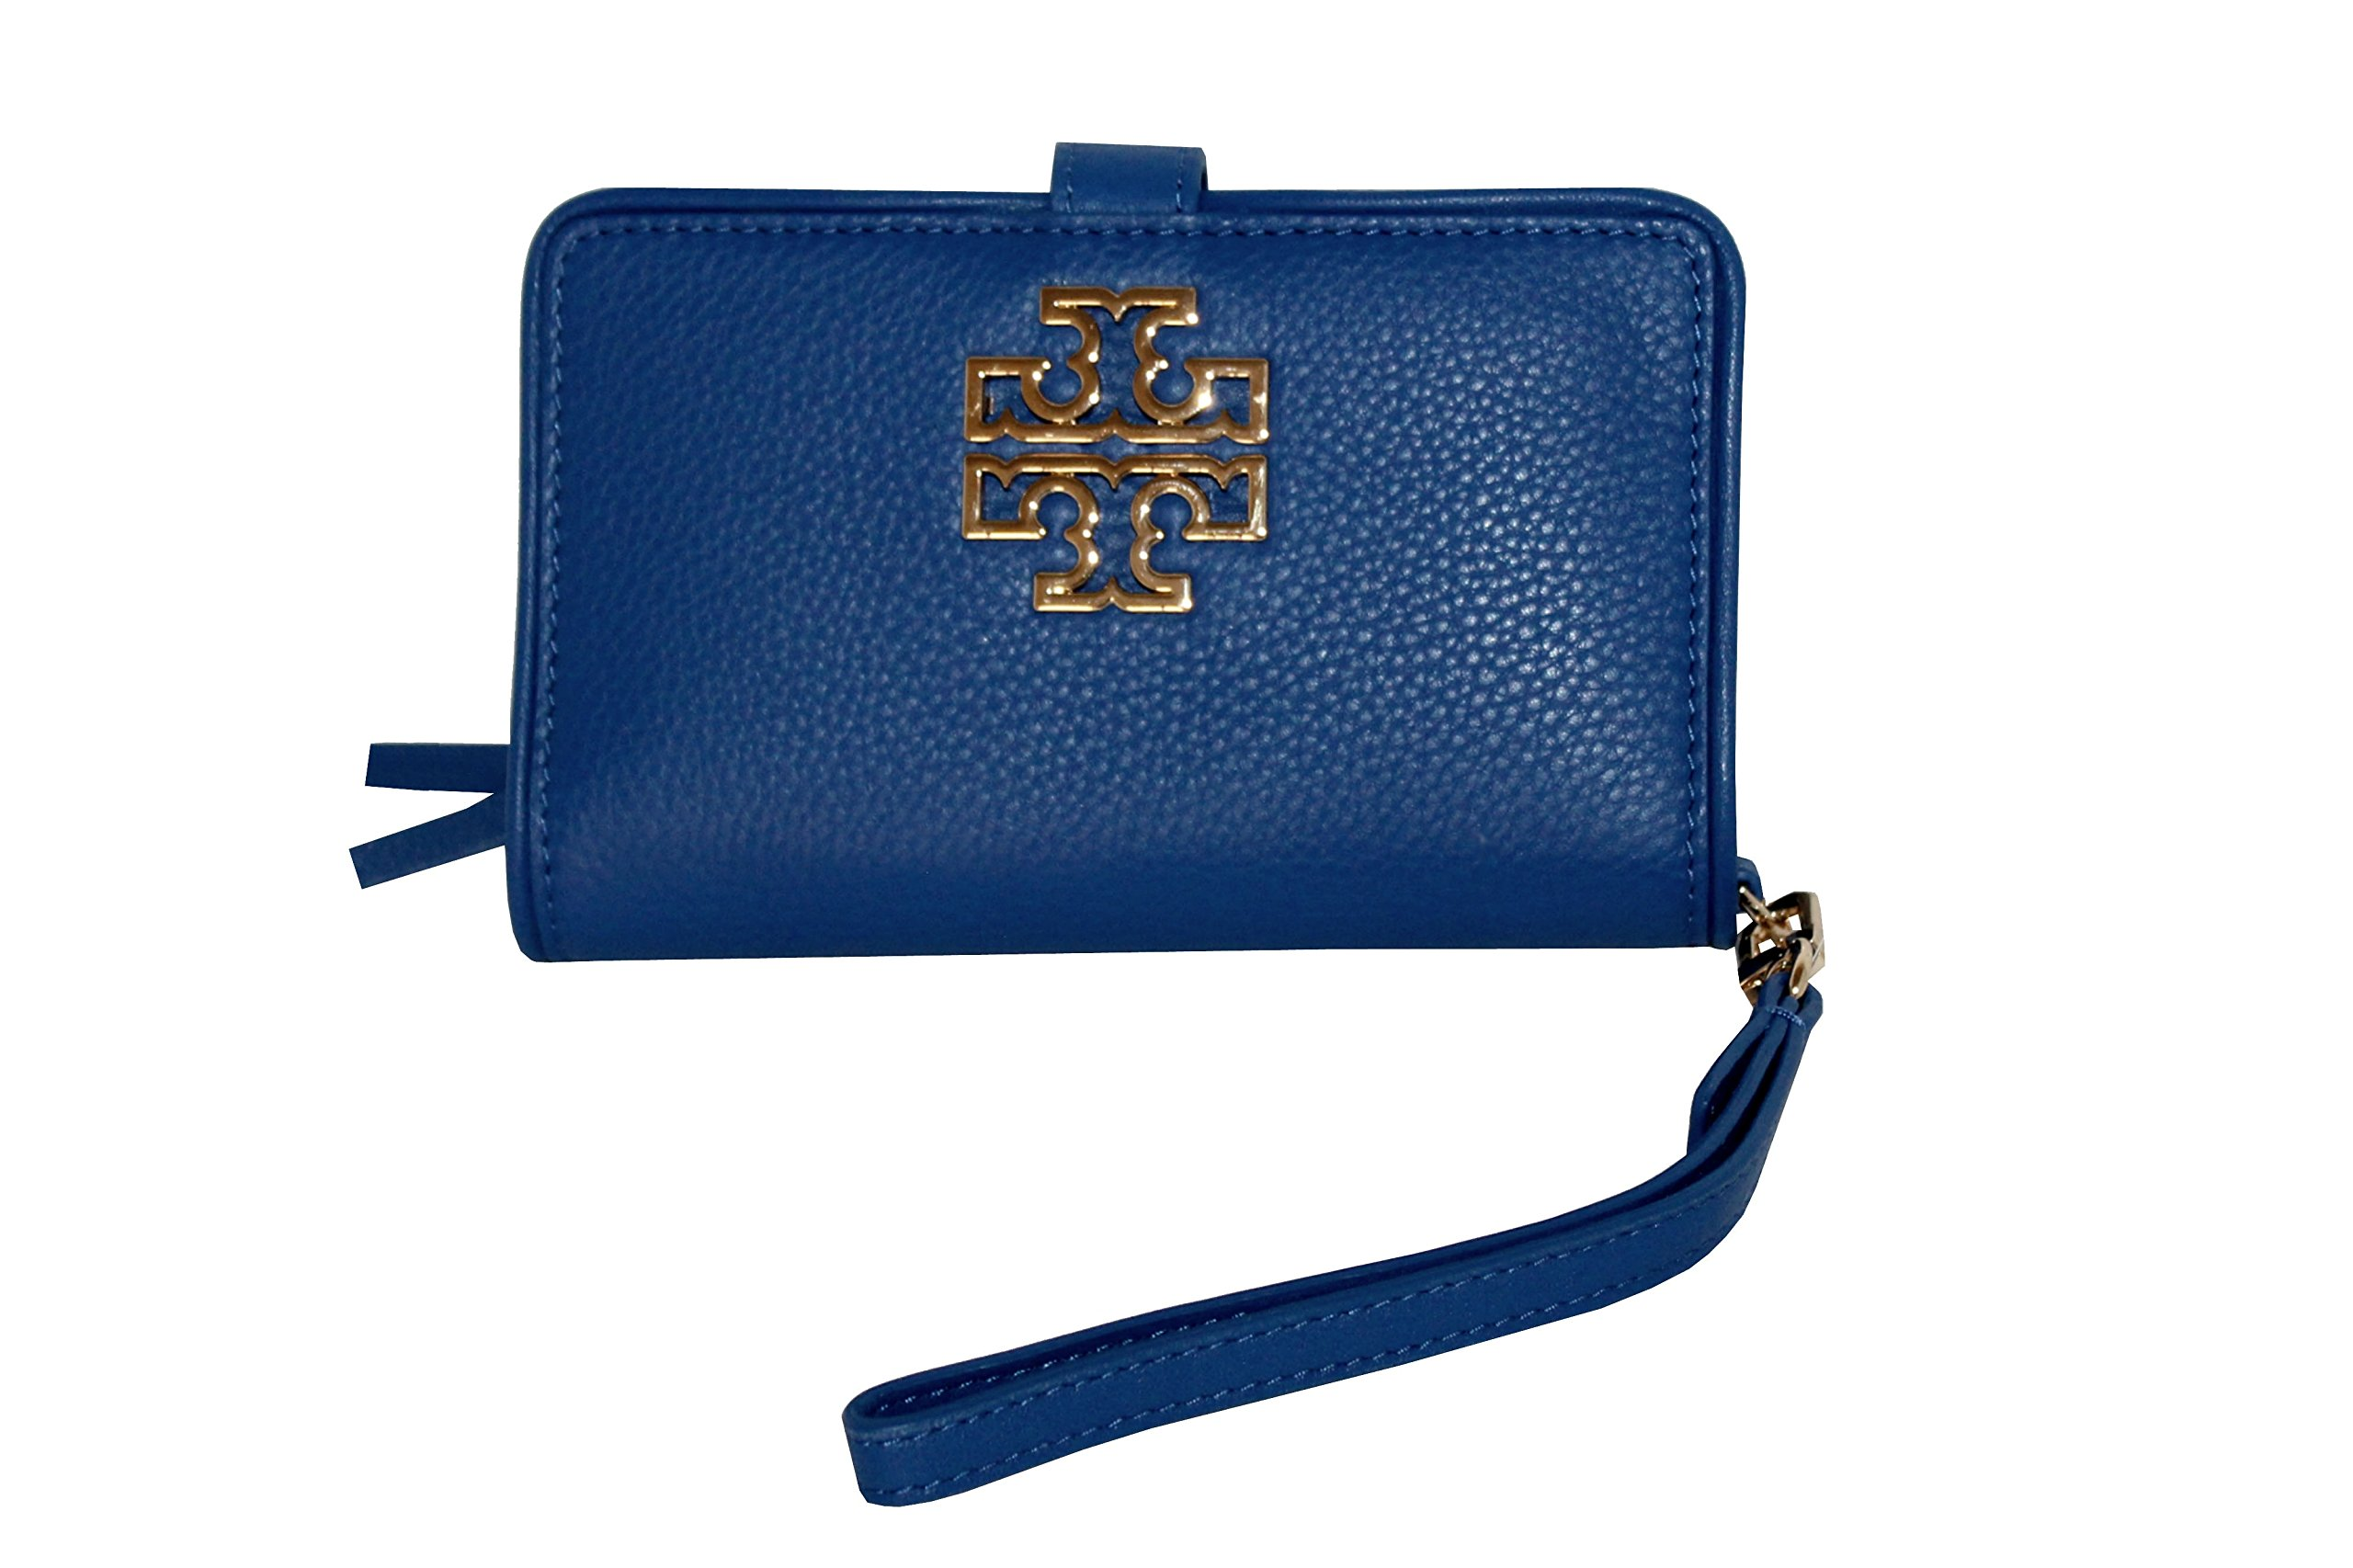 TORY BURCH BRITTEN SMART PHONE WRISTLET LEATHER WOMEN'S WALLET (BONDI BLUE) by Tory Burch